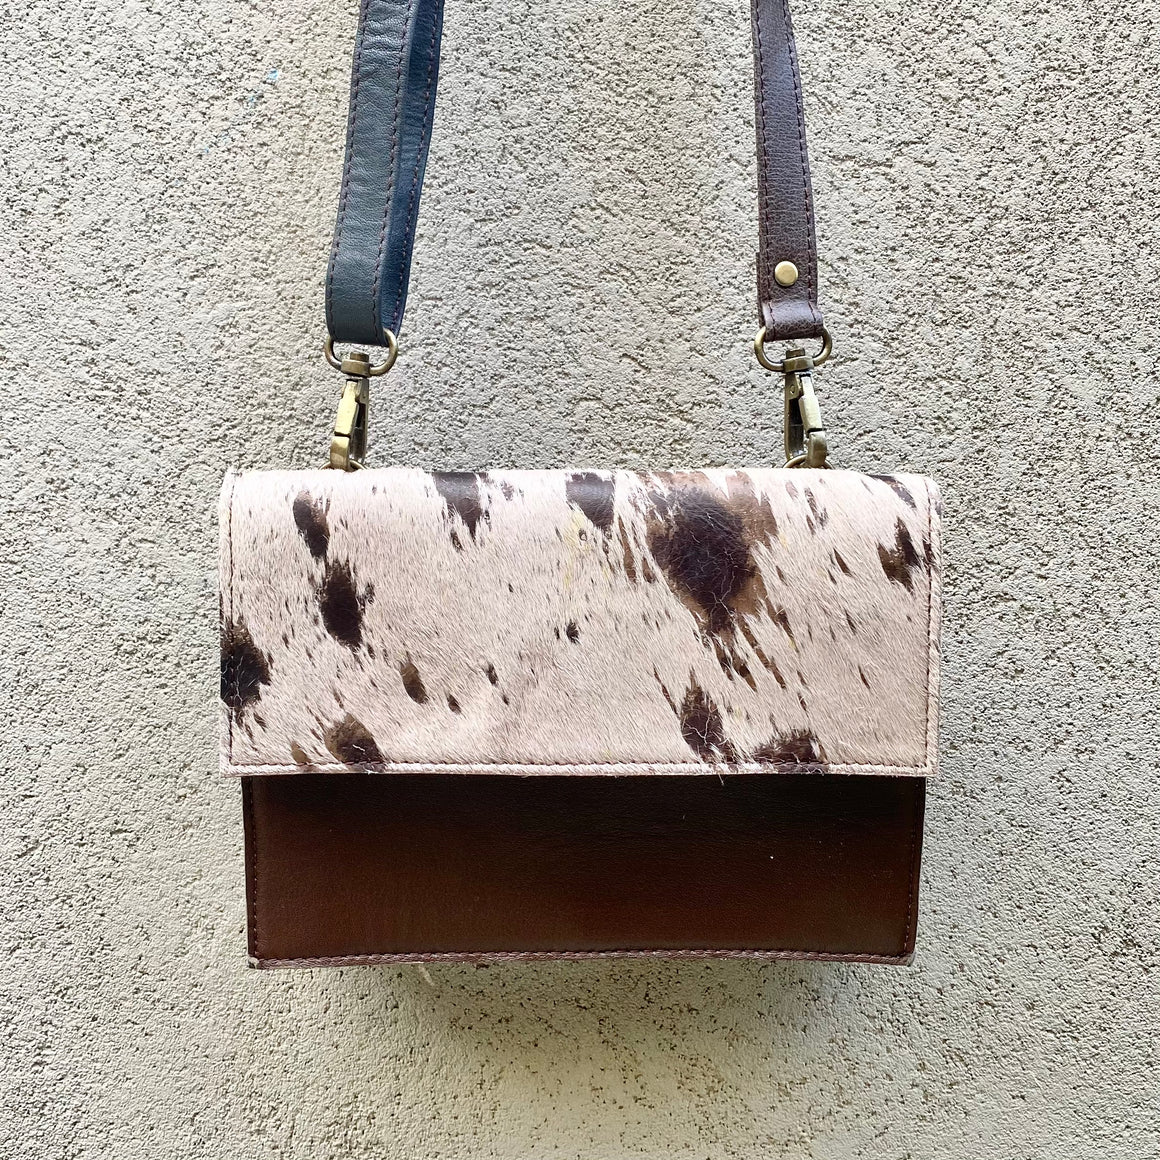 Star Cowhide and Leather Crossbody Clutch Bag - Taupe, Chocolate, Rust, Clutch Bag - KITTY KAT,